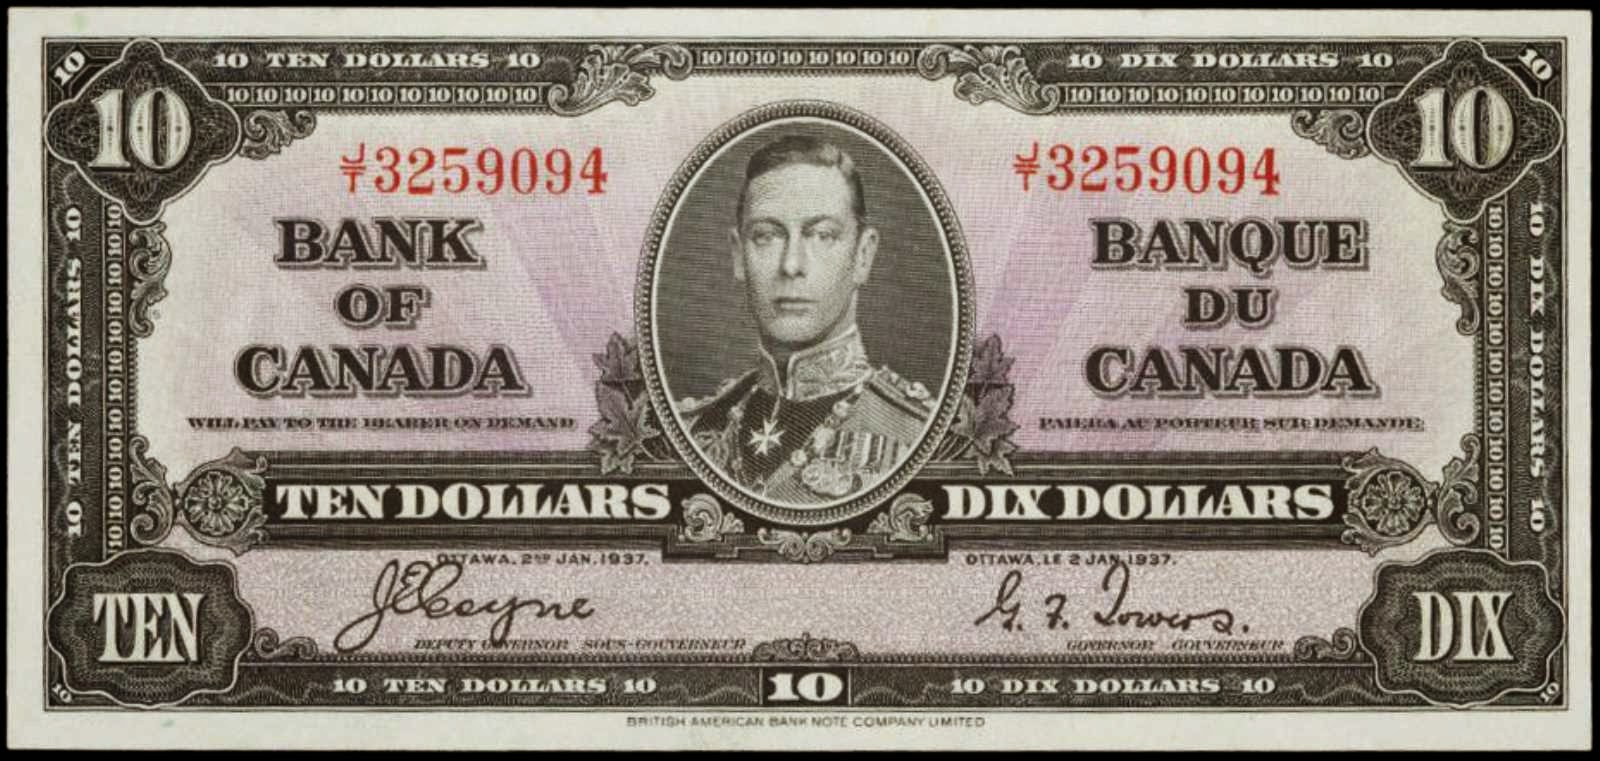 Bank of Canada banknotes 1937 Ten Dollar Bill